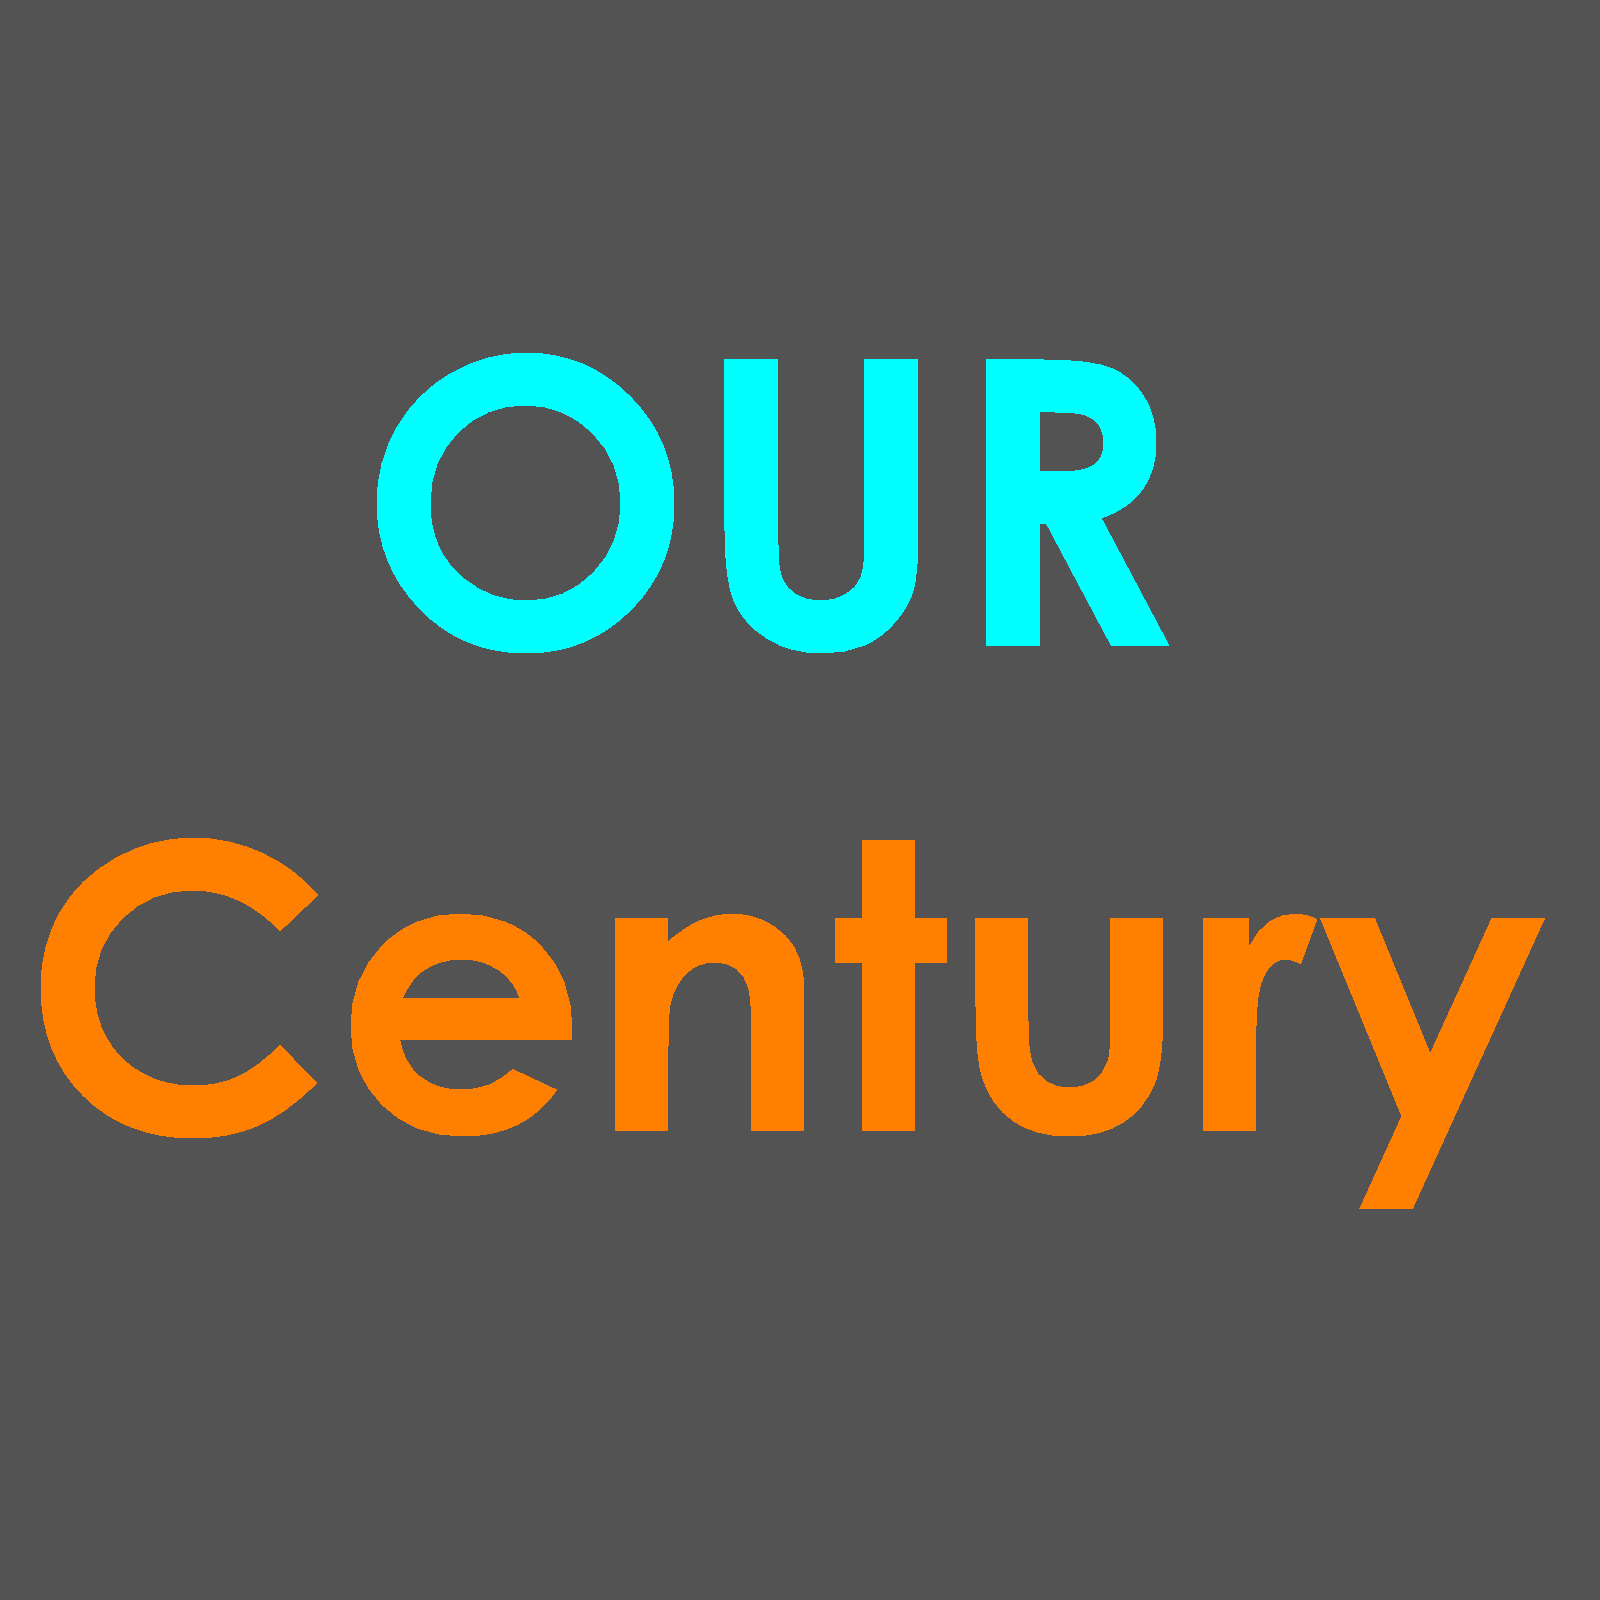 Our Century